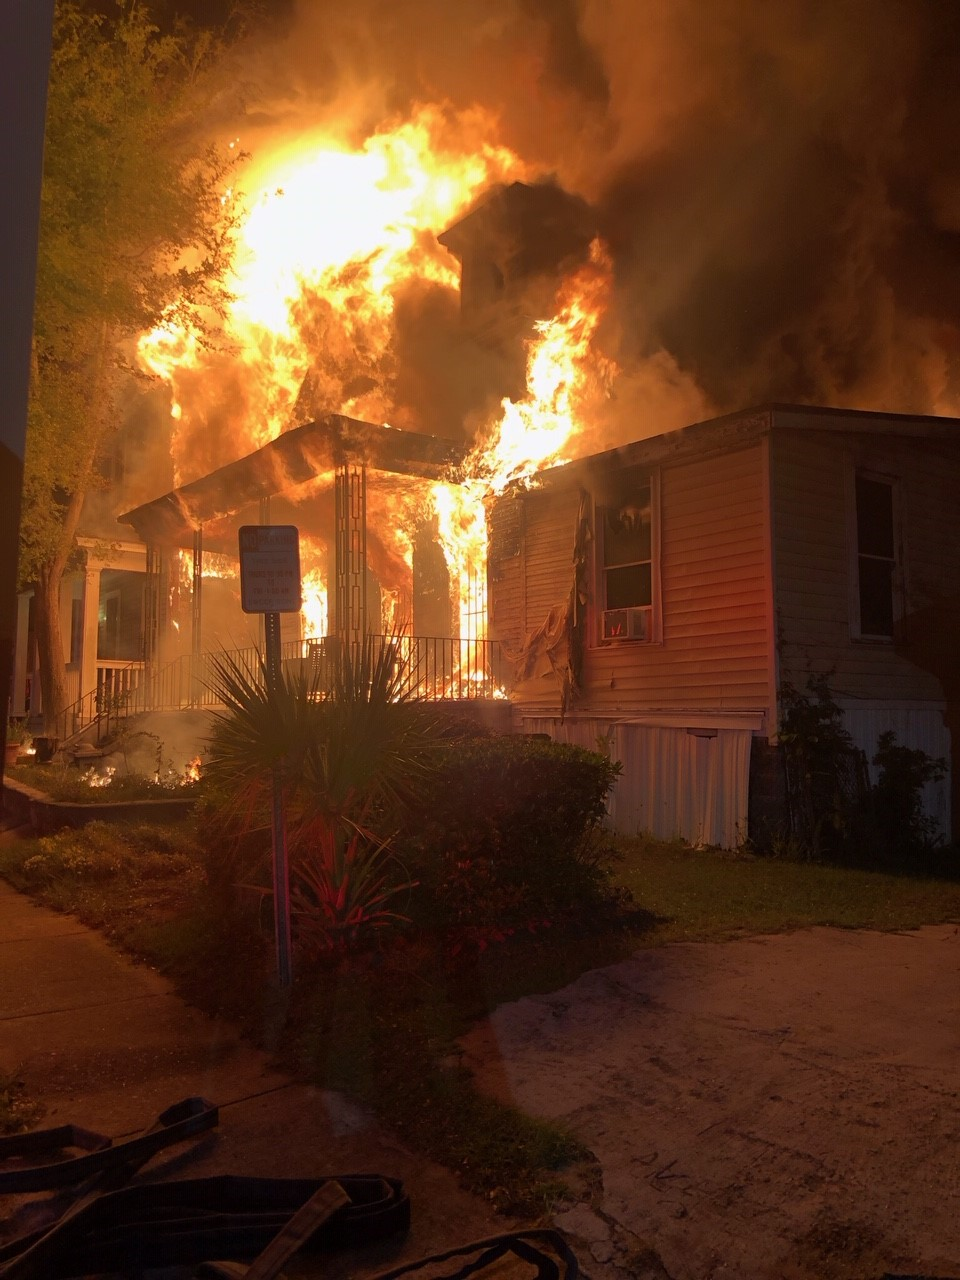 34TH ST FIRE_1556501138343.jpg.jpg